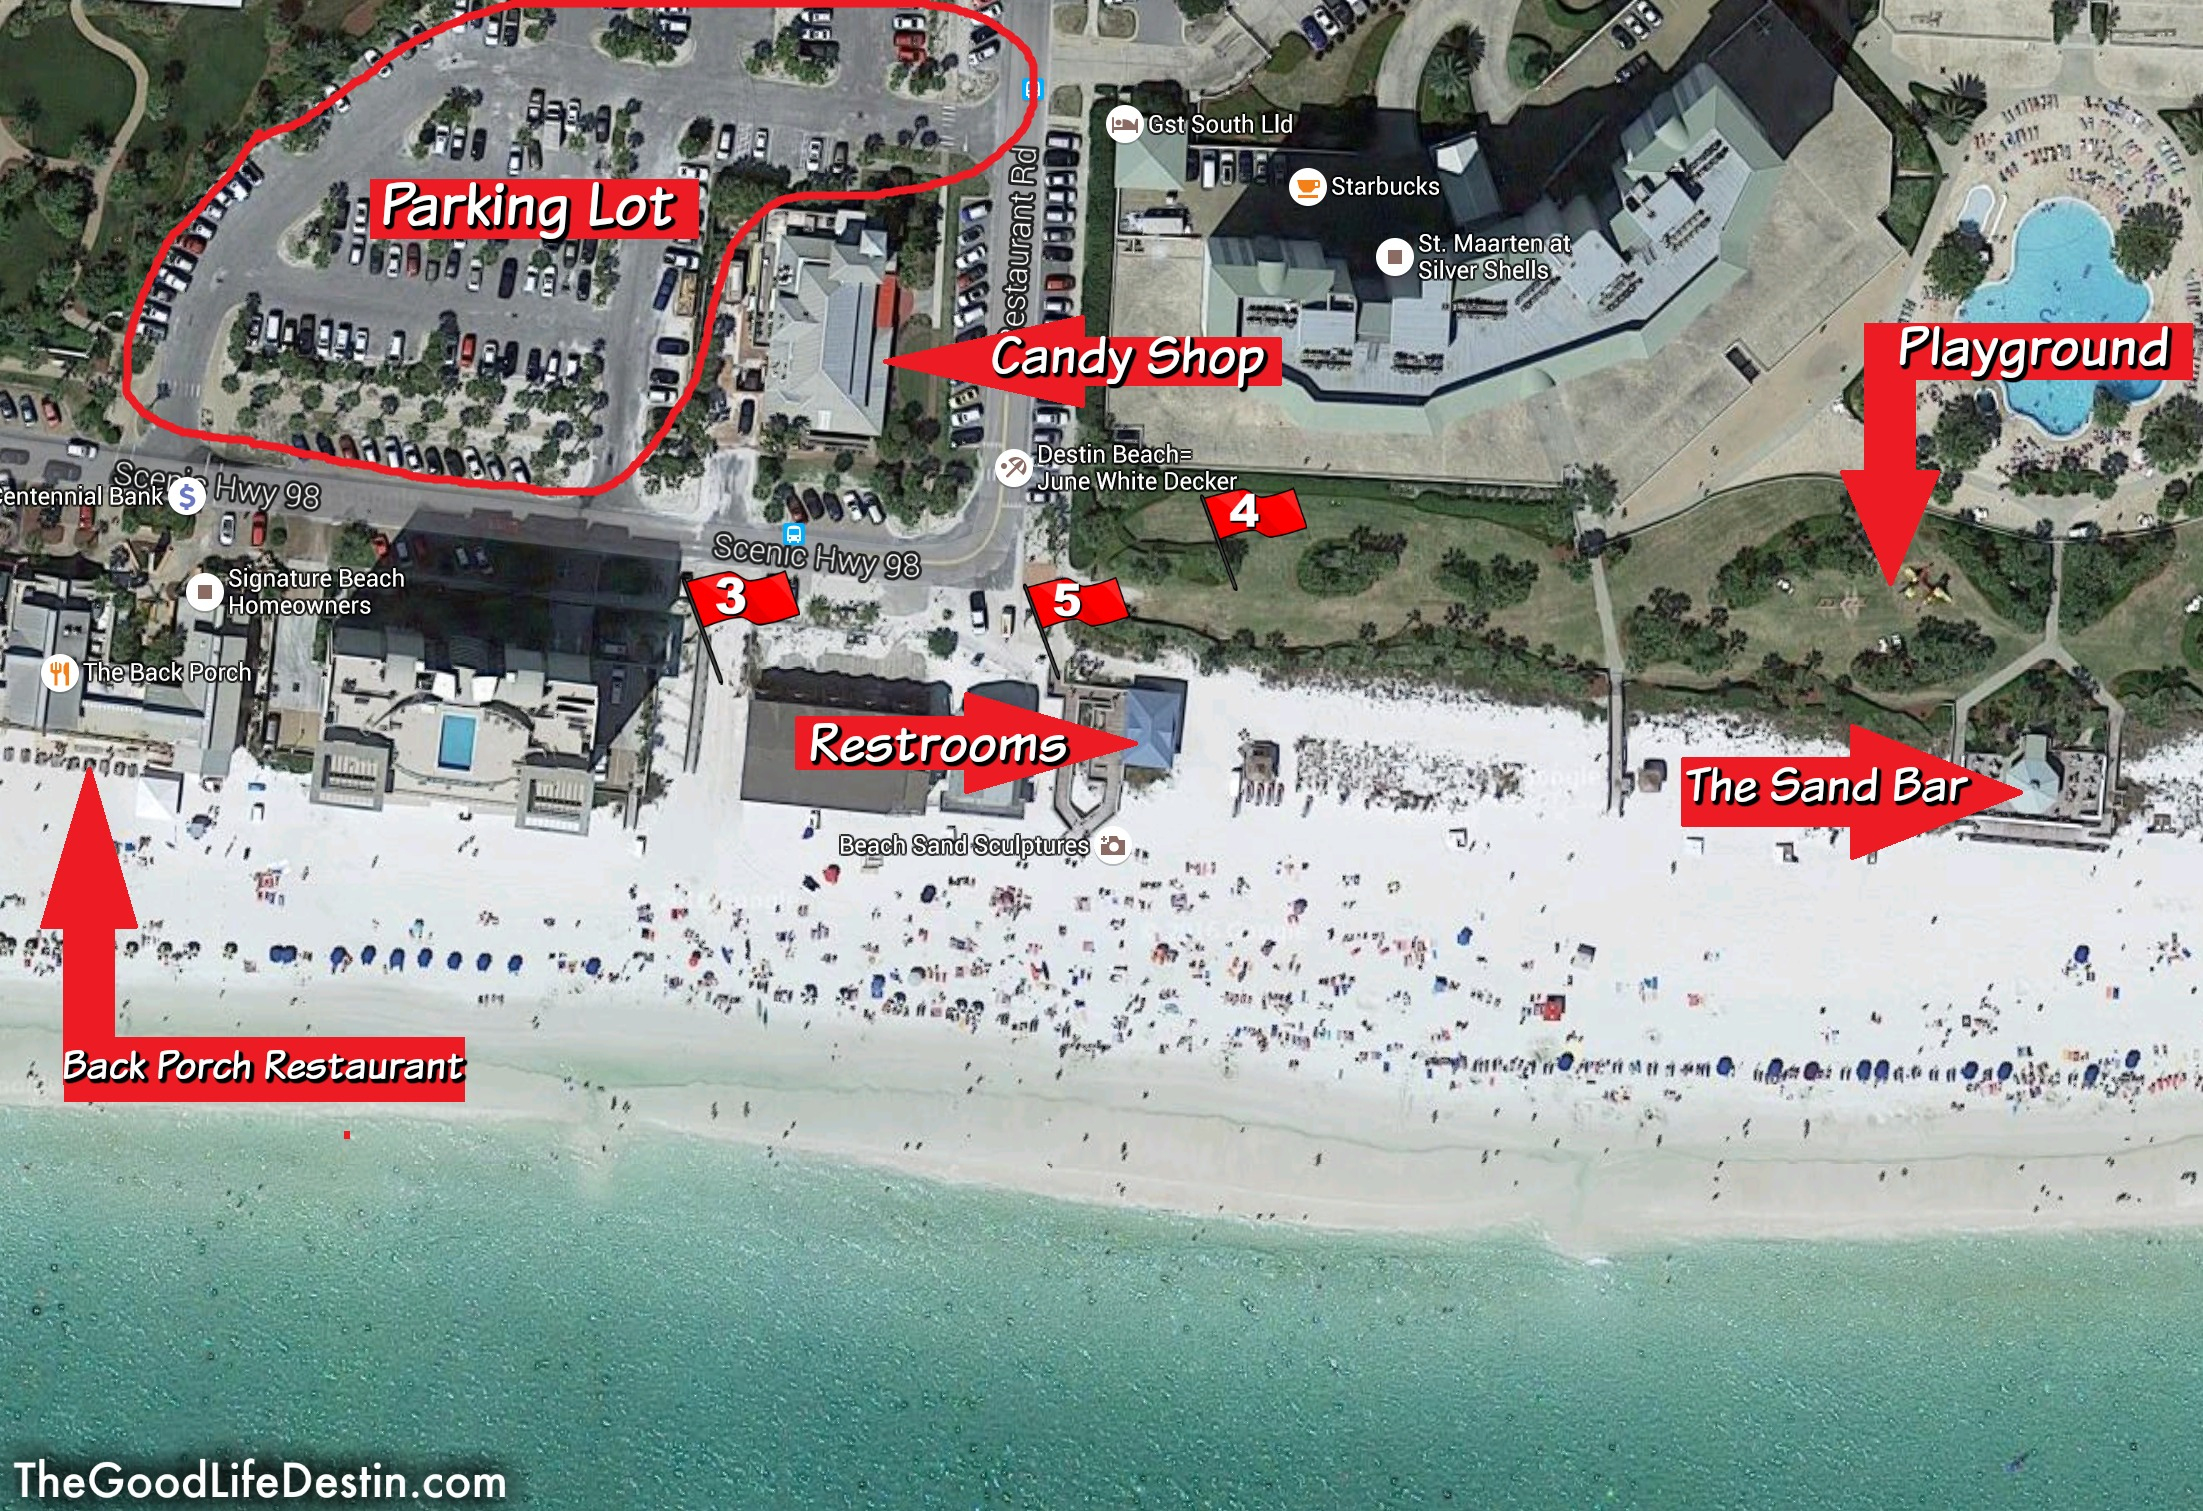 Find Your Perfect Beach In Destin Florida - The Good Life Destin - Map Of Destin Florida And Surrounding Cities